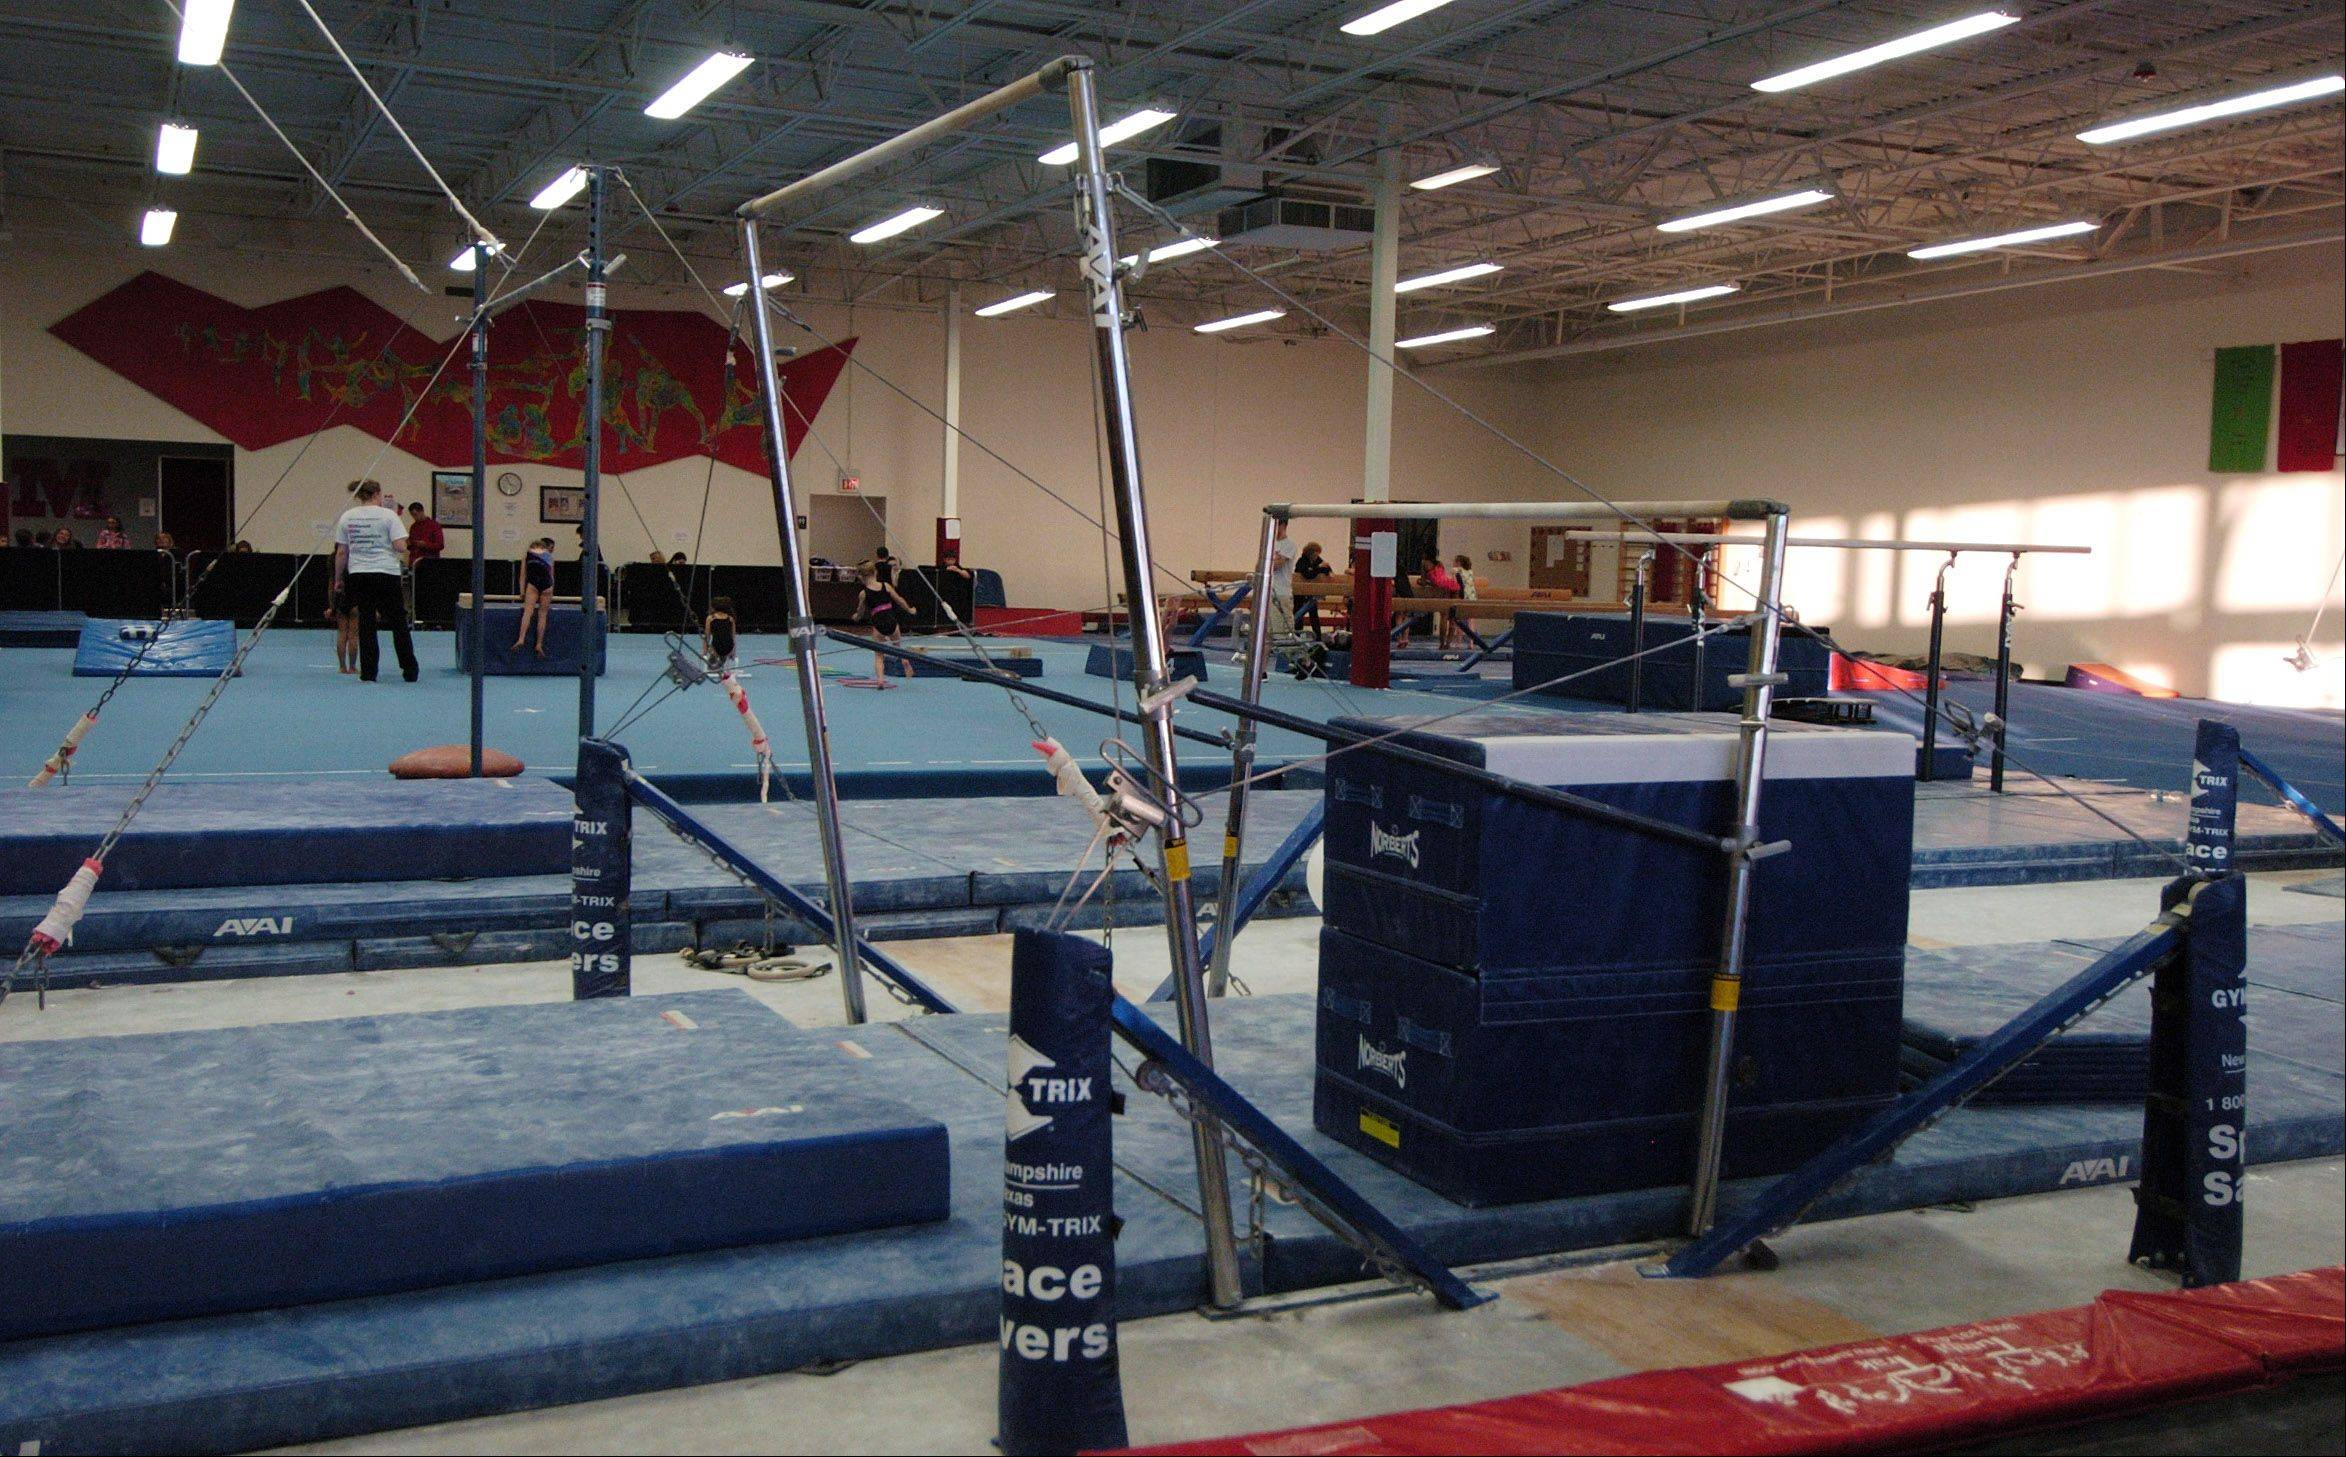 JOE LEWNARD/jlewnard@dailyherald.comInterior view of the facility at Midwest Elite Gymnastics Academy in South Barrington. The academy will be moving to Elgin in January.